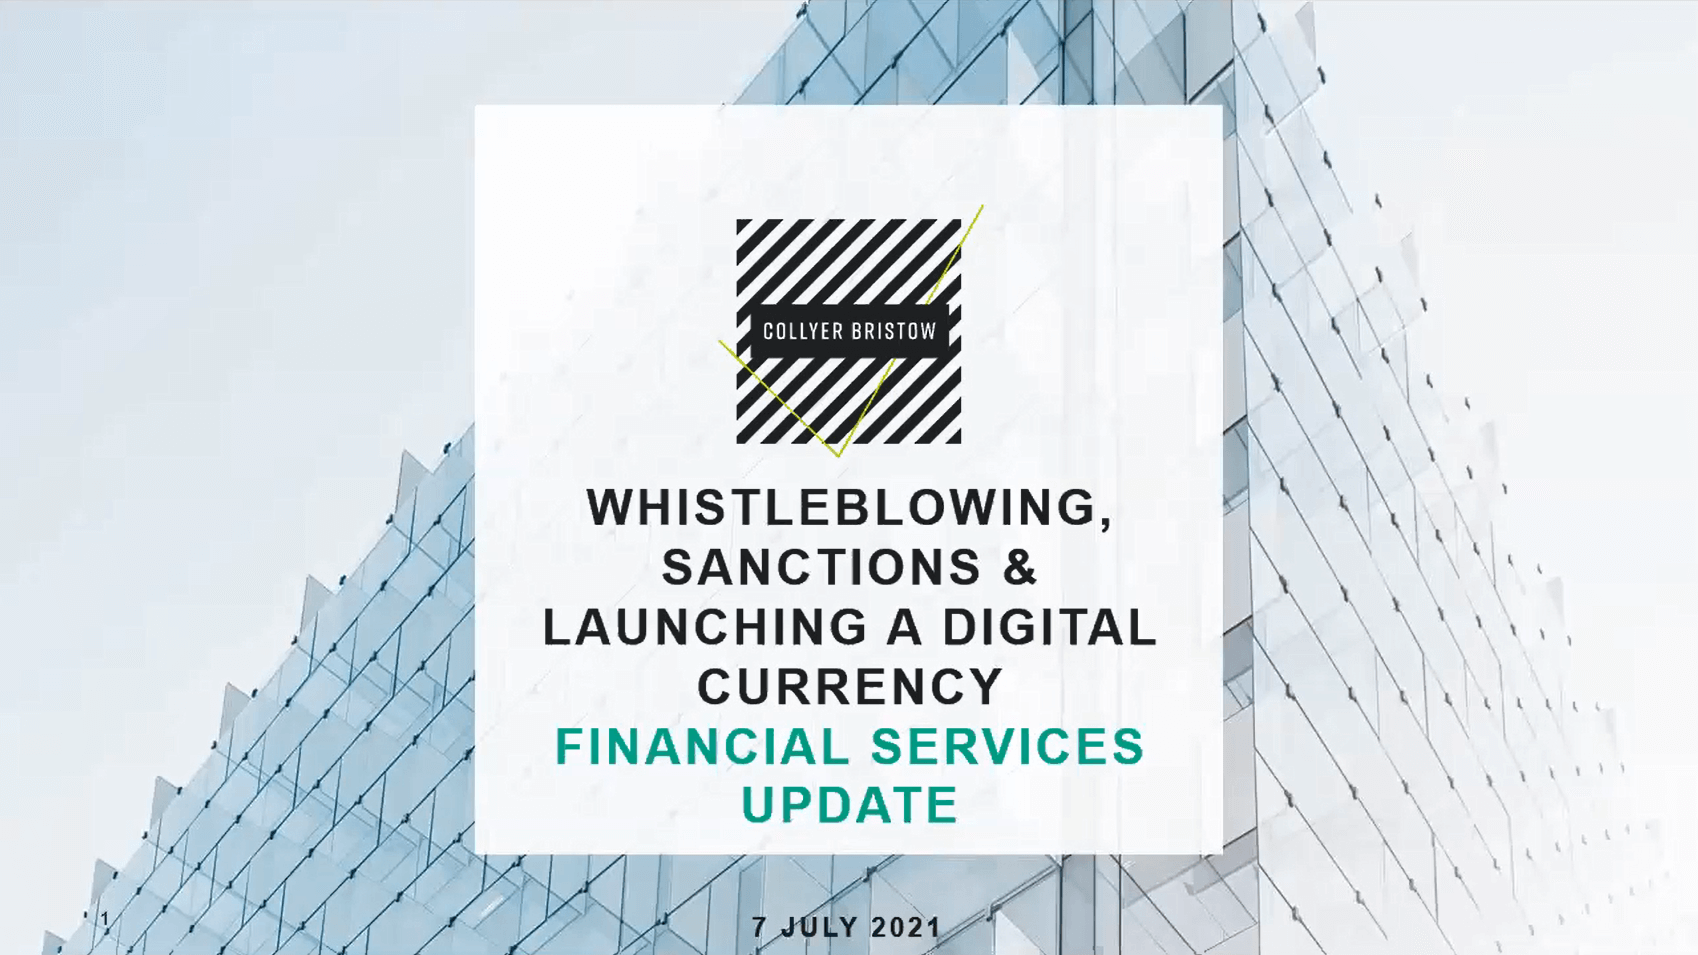 Financial Services webinar: Whistleblowing, sanctions regimes and launching a digital currency